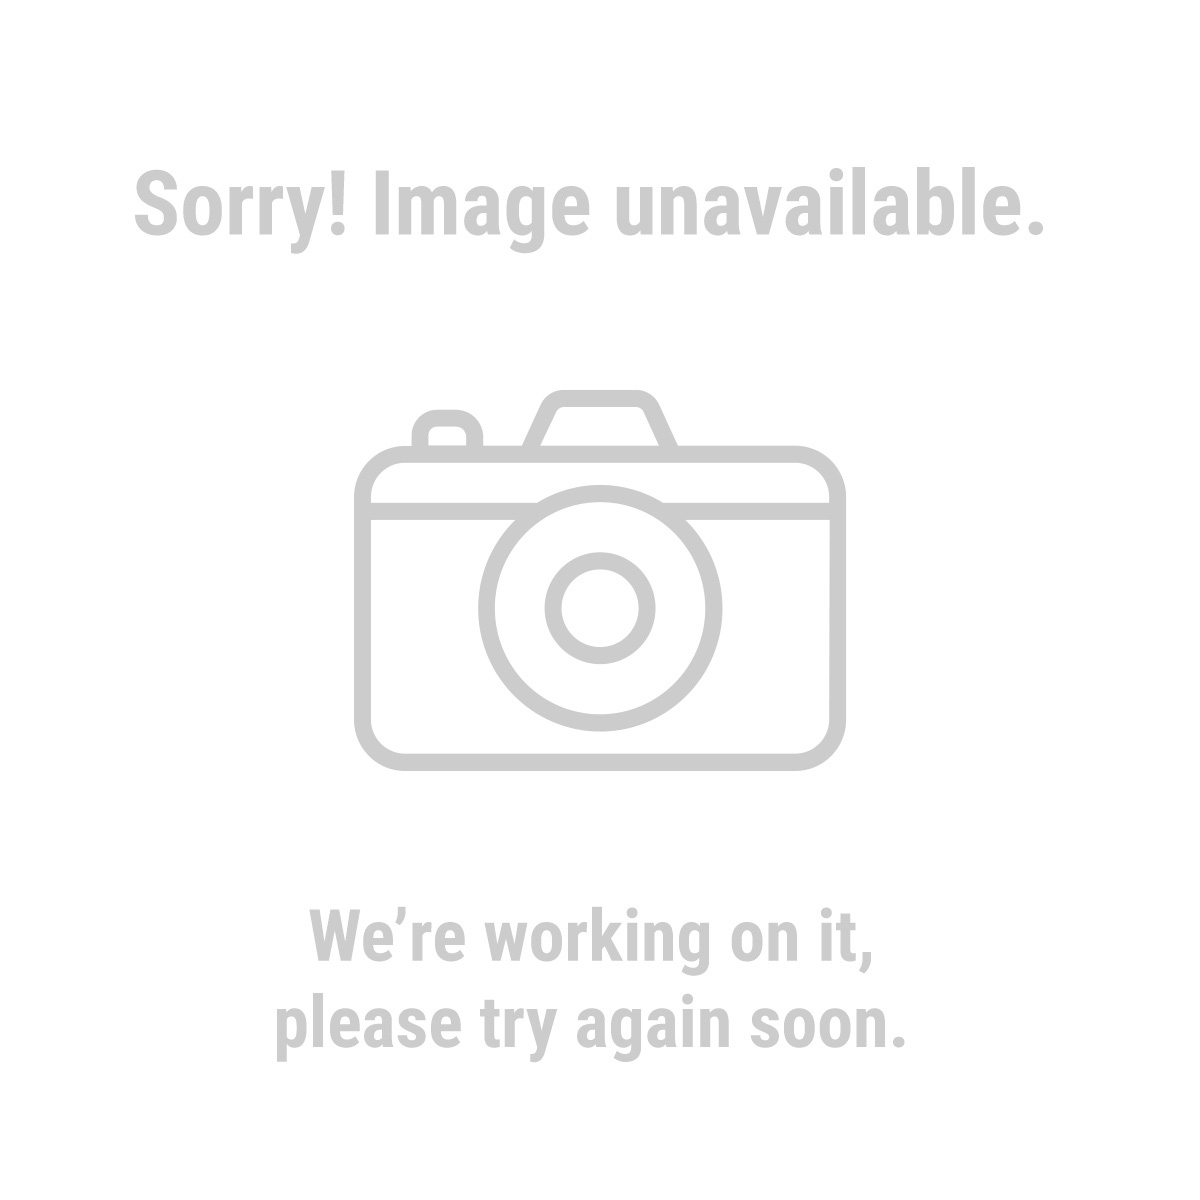 Compare Shipping Rates >> Super Glue Gel, 3 Pack